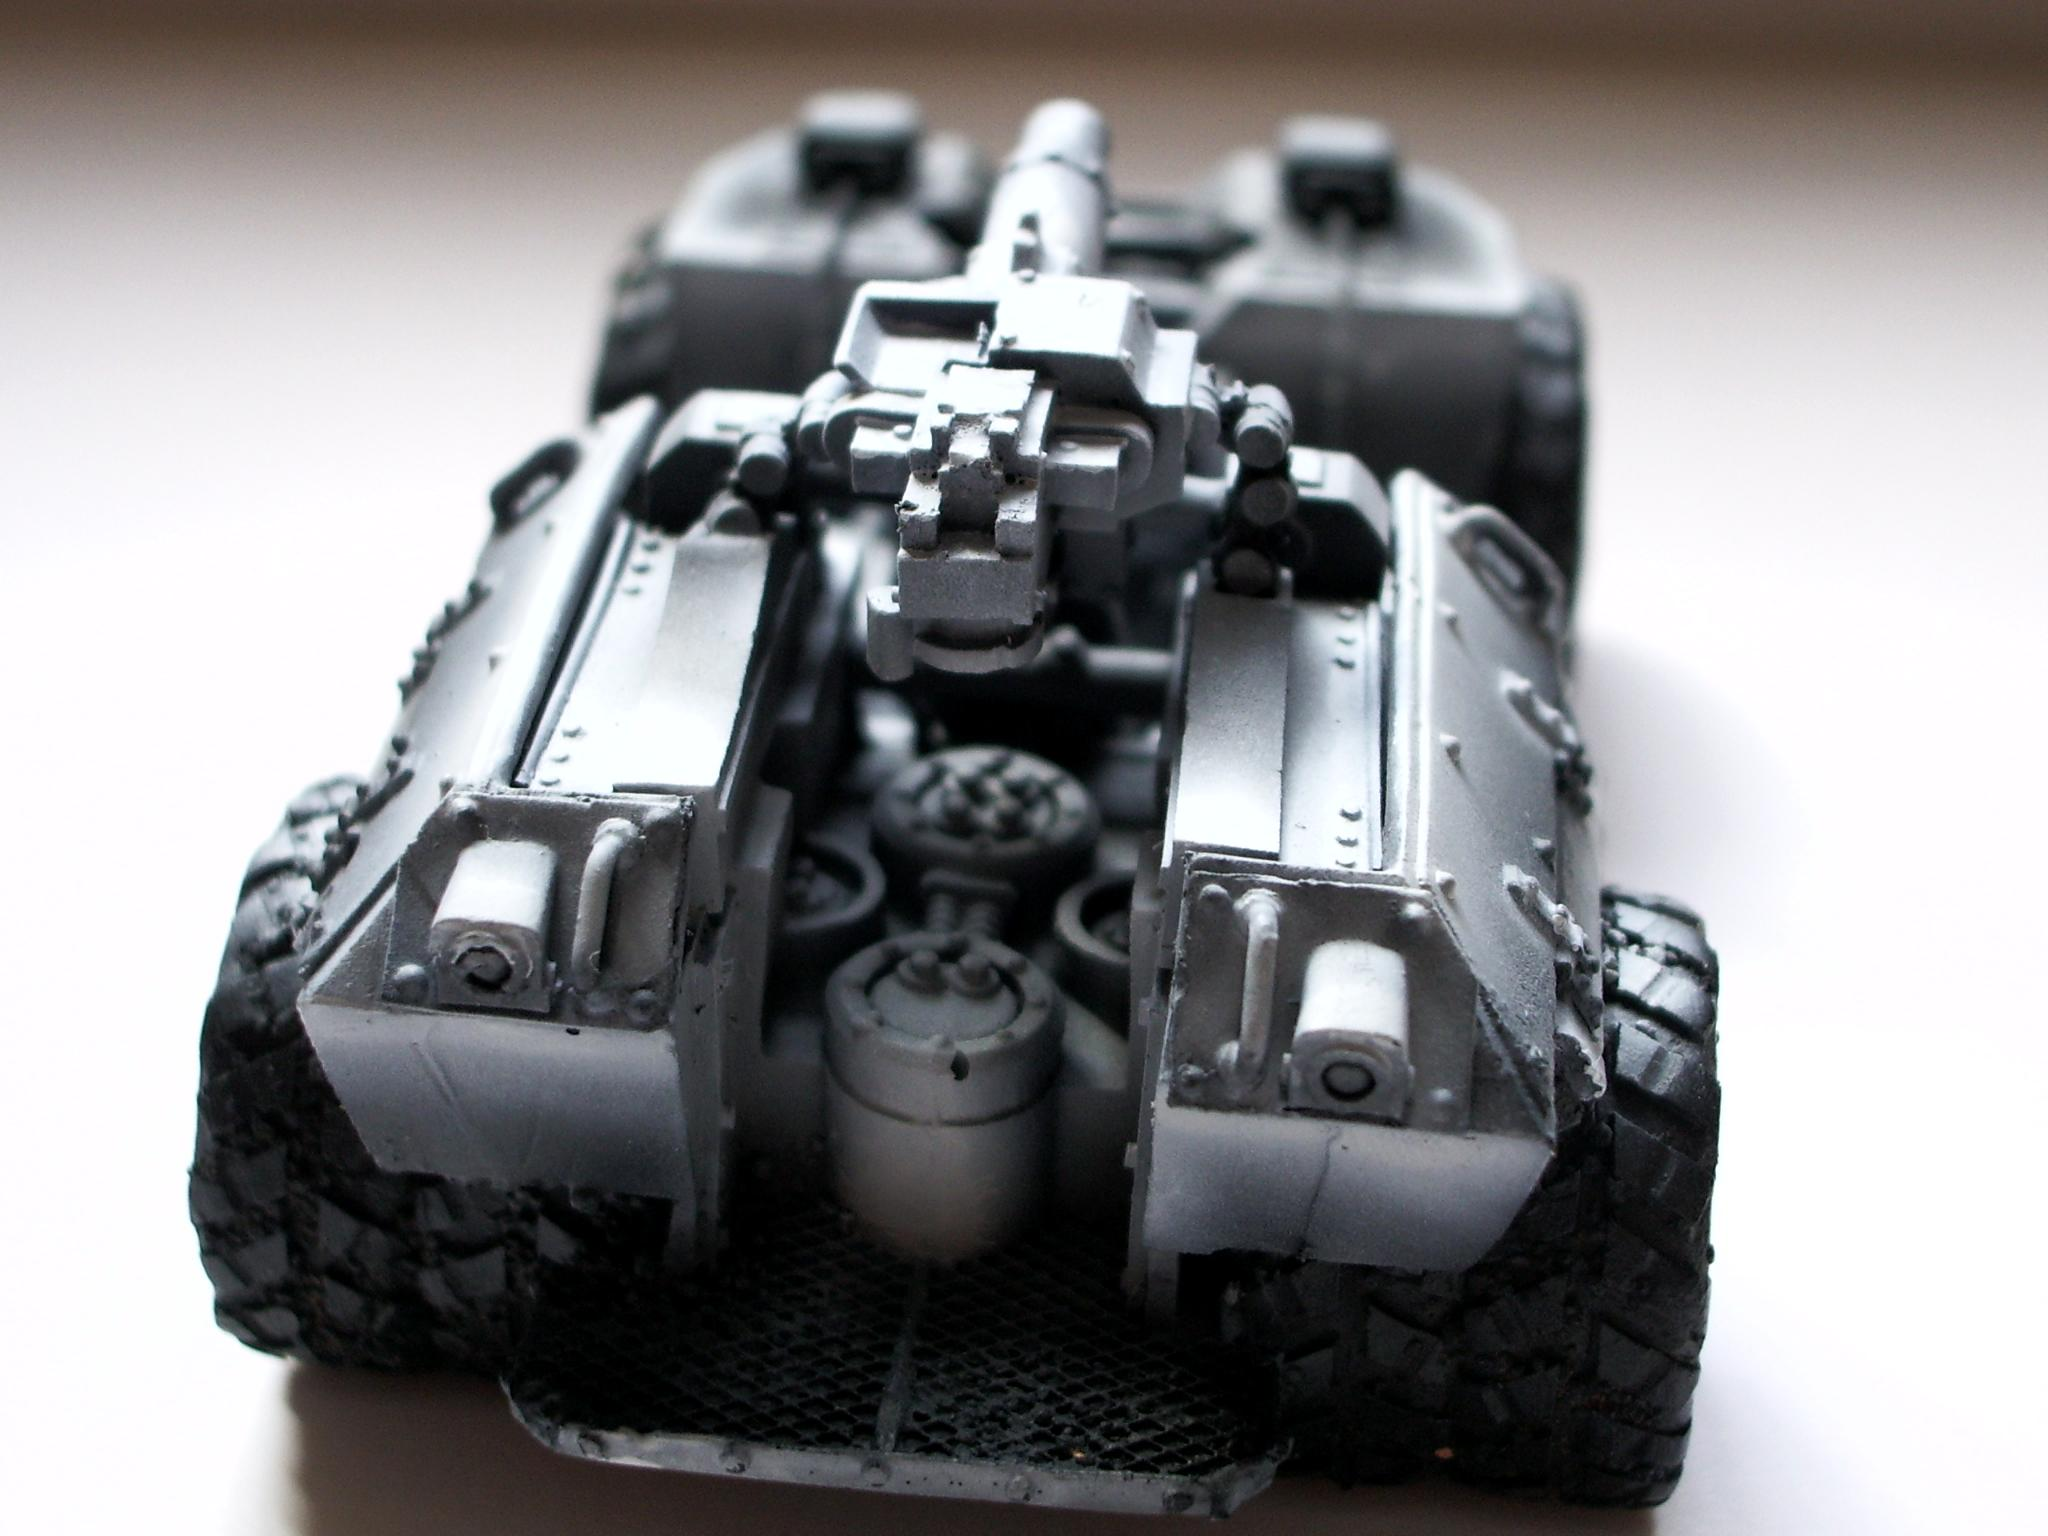 Airbrush, Forge World, Halo, Imperial Guard, Unsc, Warthog